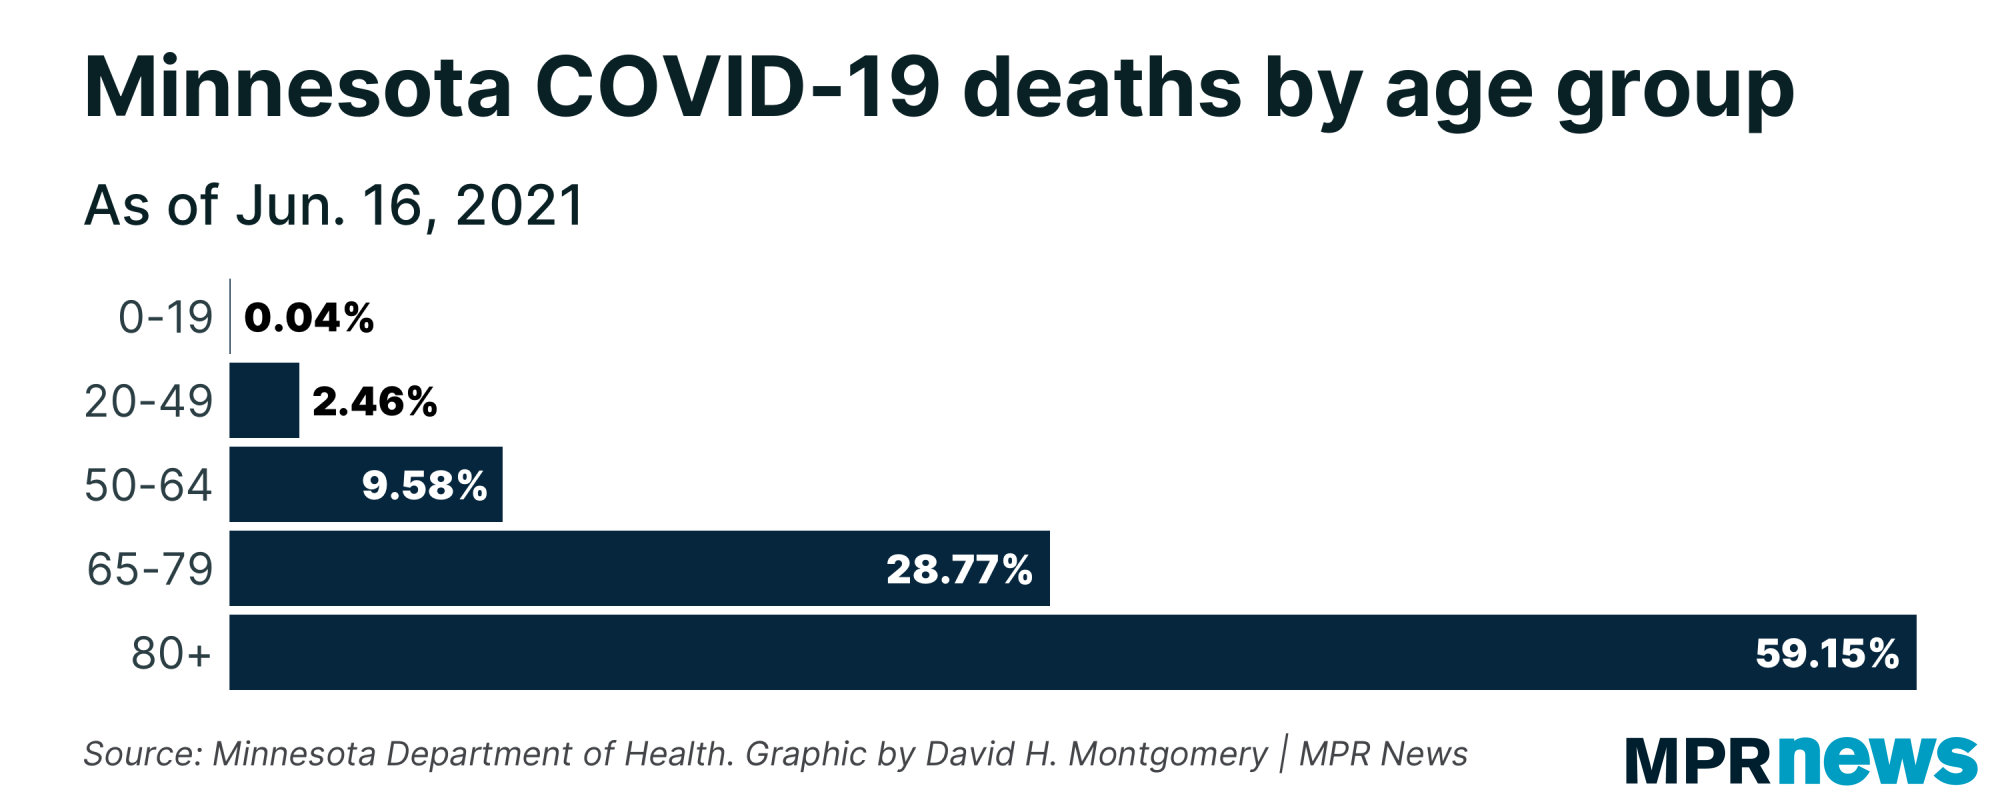 Minnesota COVID-19 deaths by age group